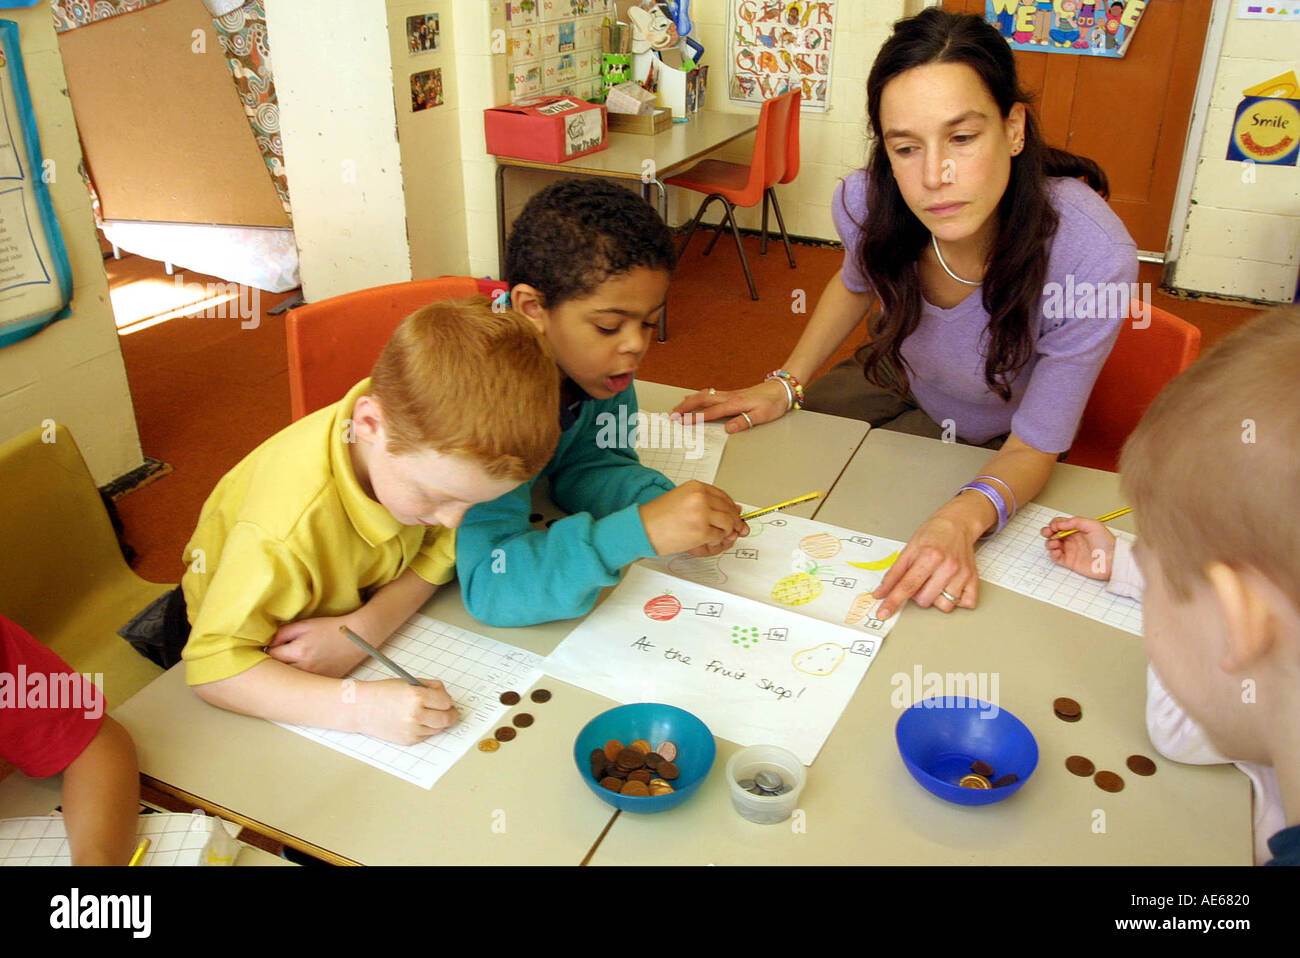 Primary School Children 6 To 7 Year Old In Maths Class